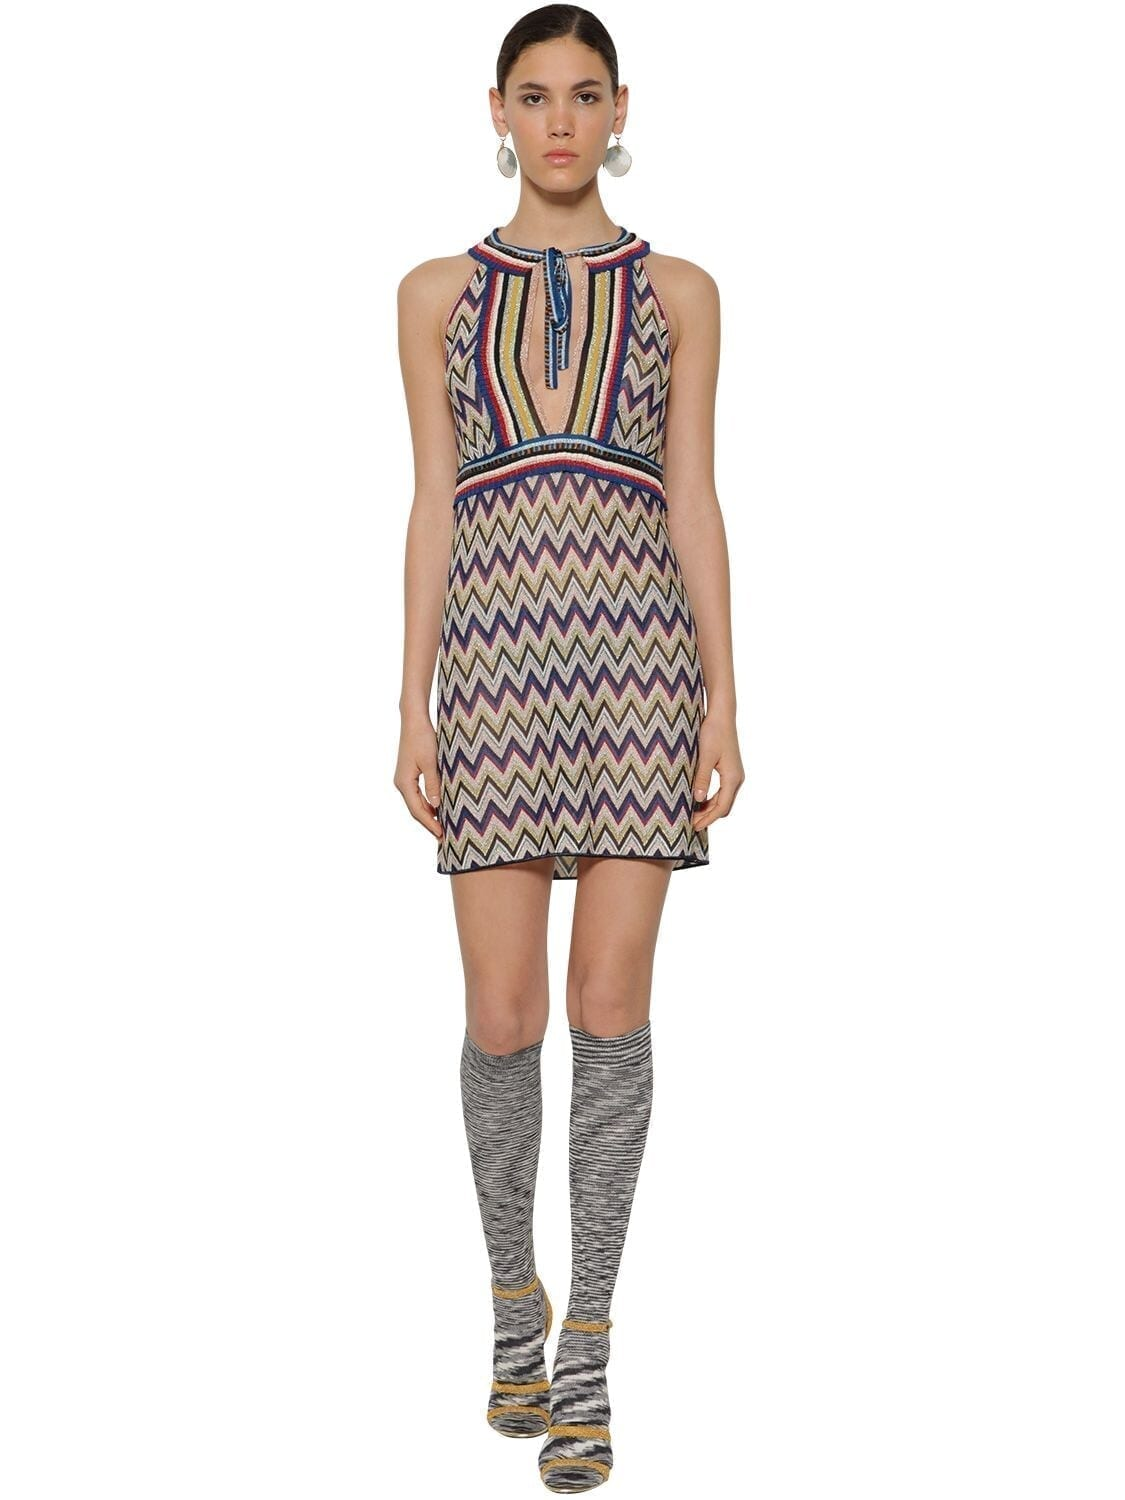 MISSONI Zigzag Printed Knit Lamé Mini Dress